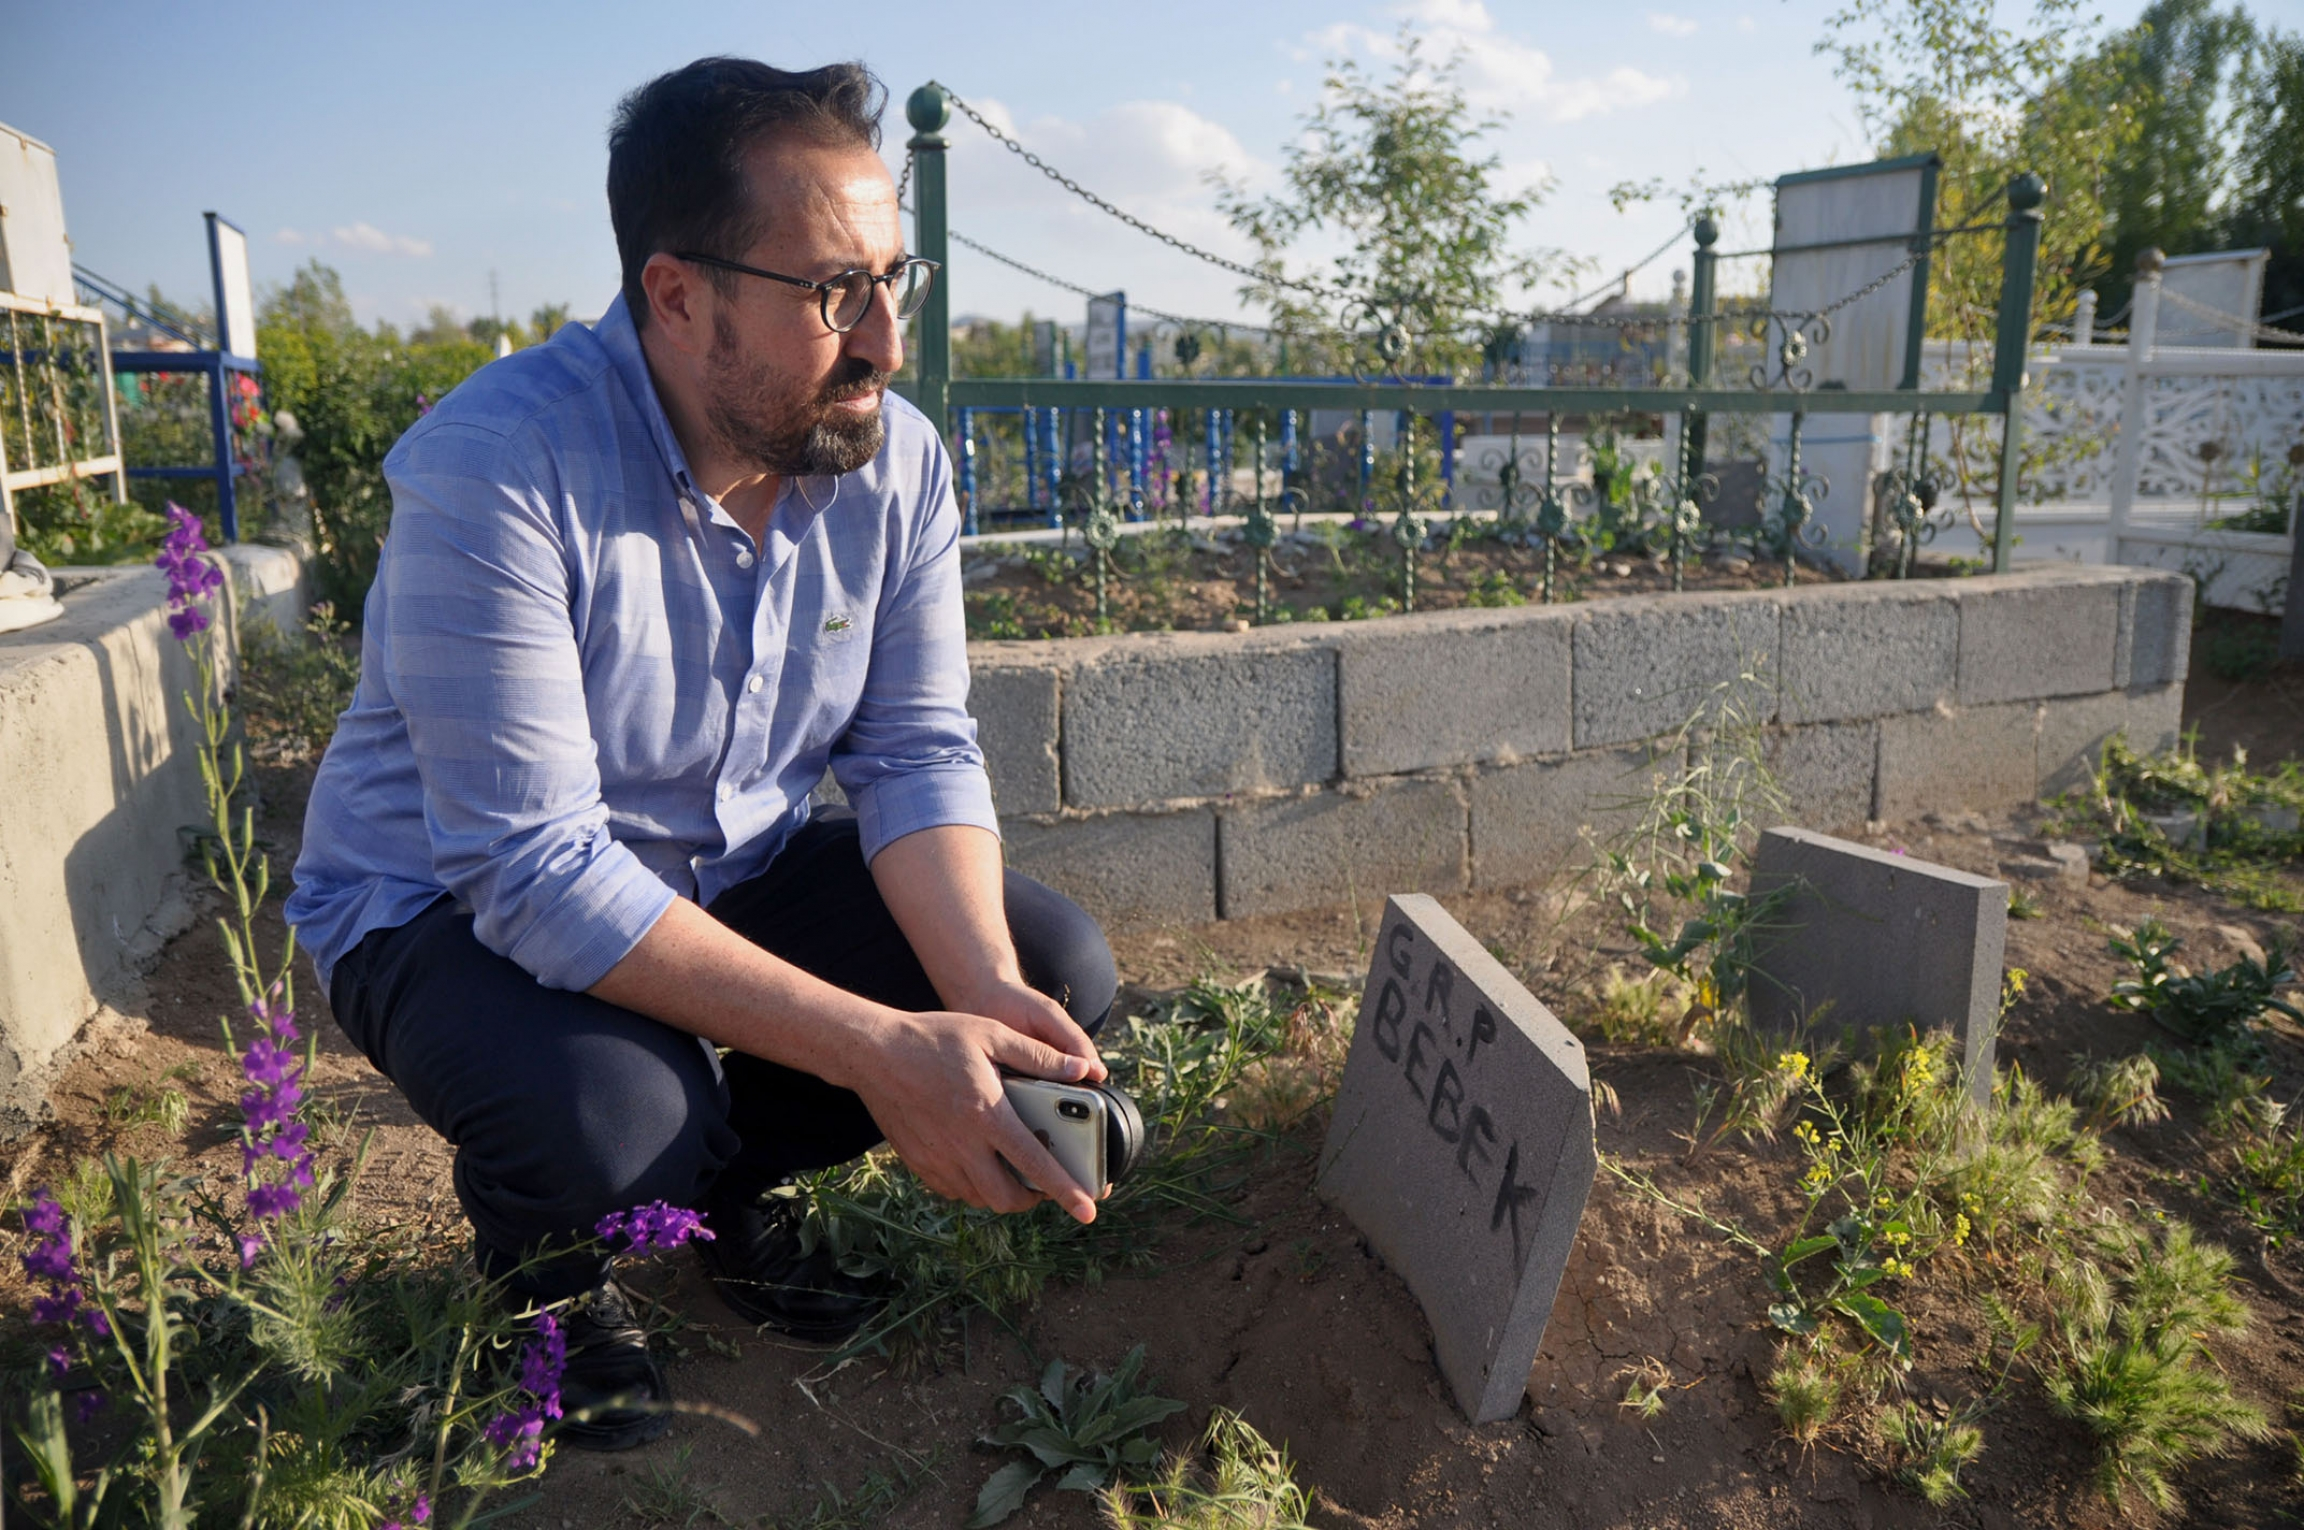 Mahmut Kaçan, an attorney with the Van Bar Association, sits near a grave for an infant who died on the journey to Turkey.